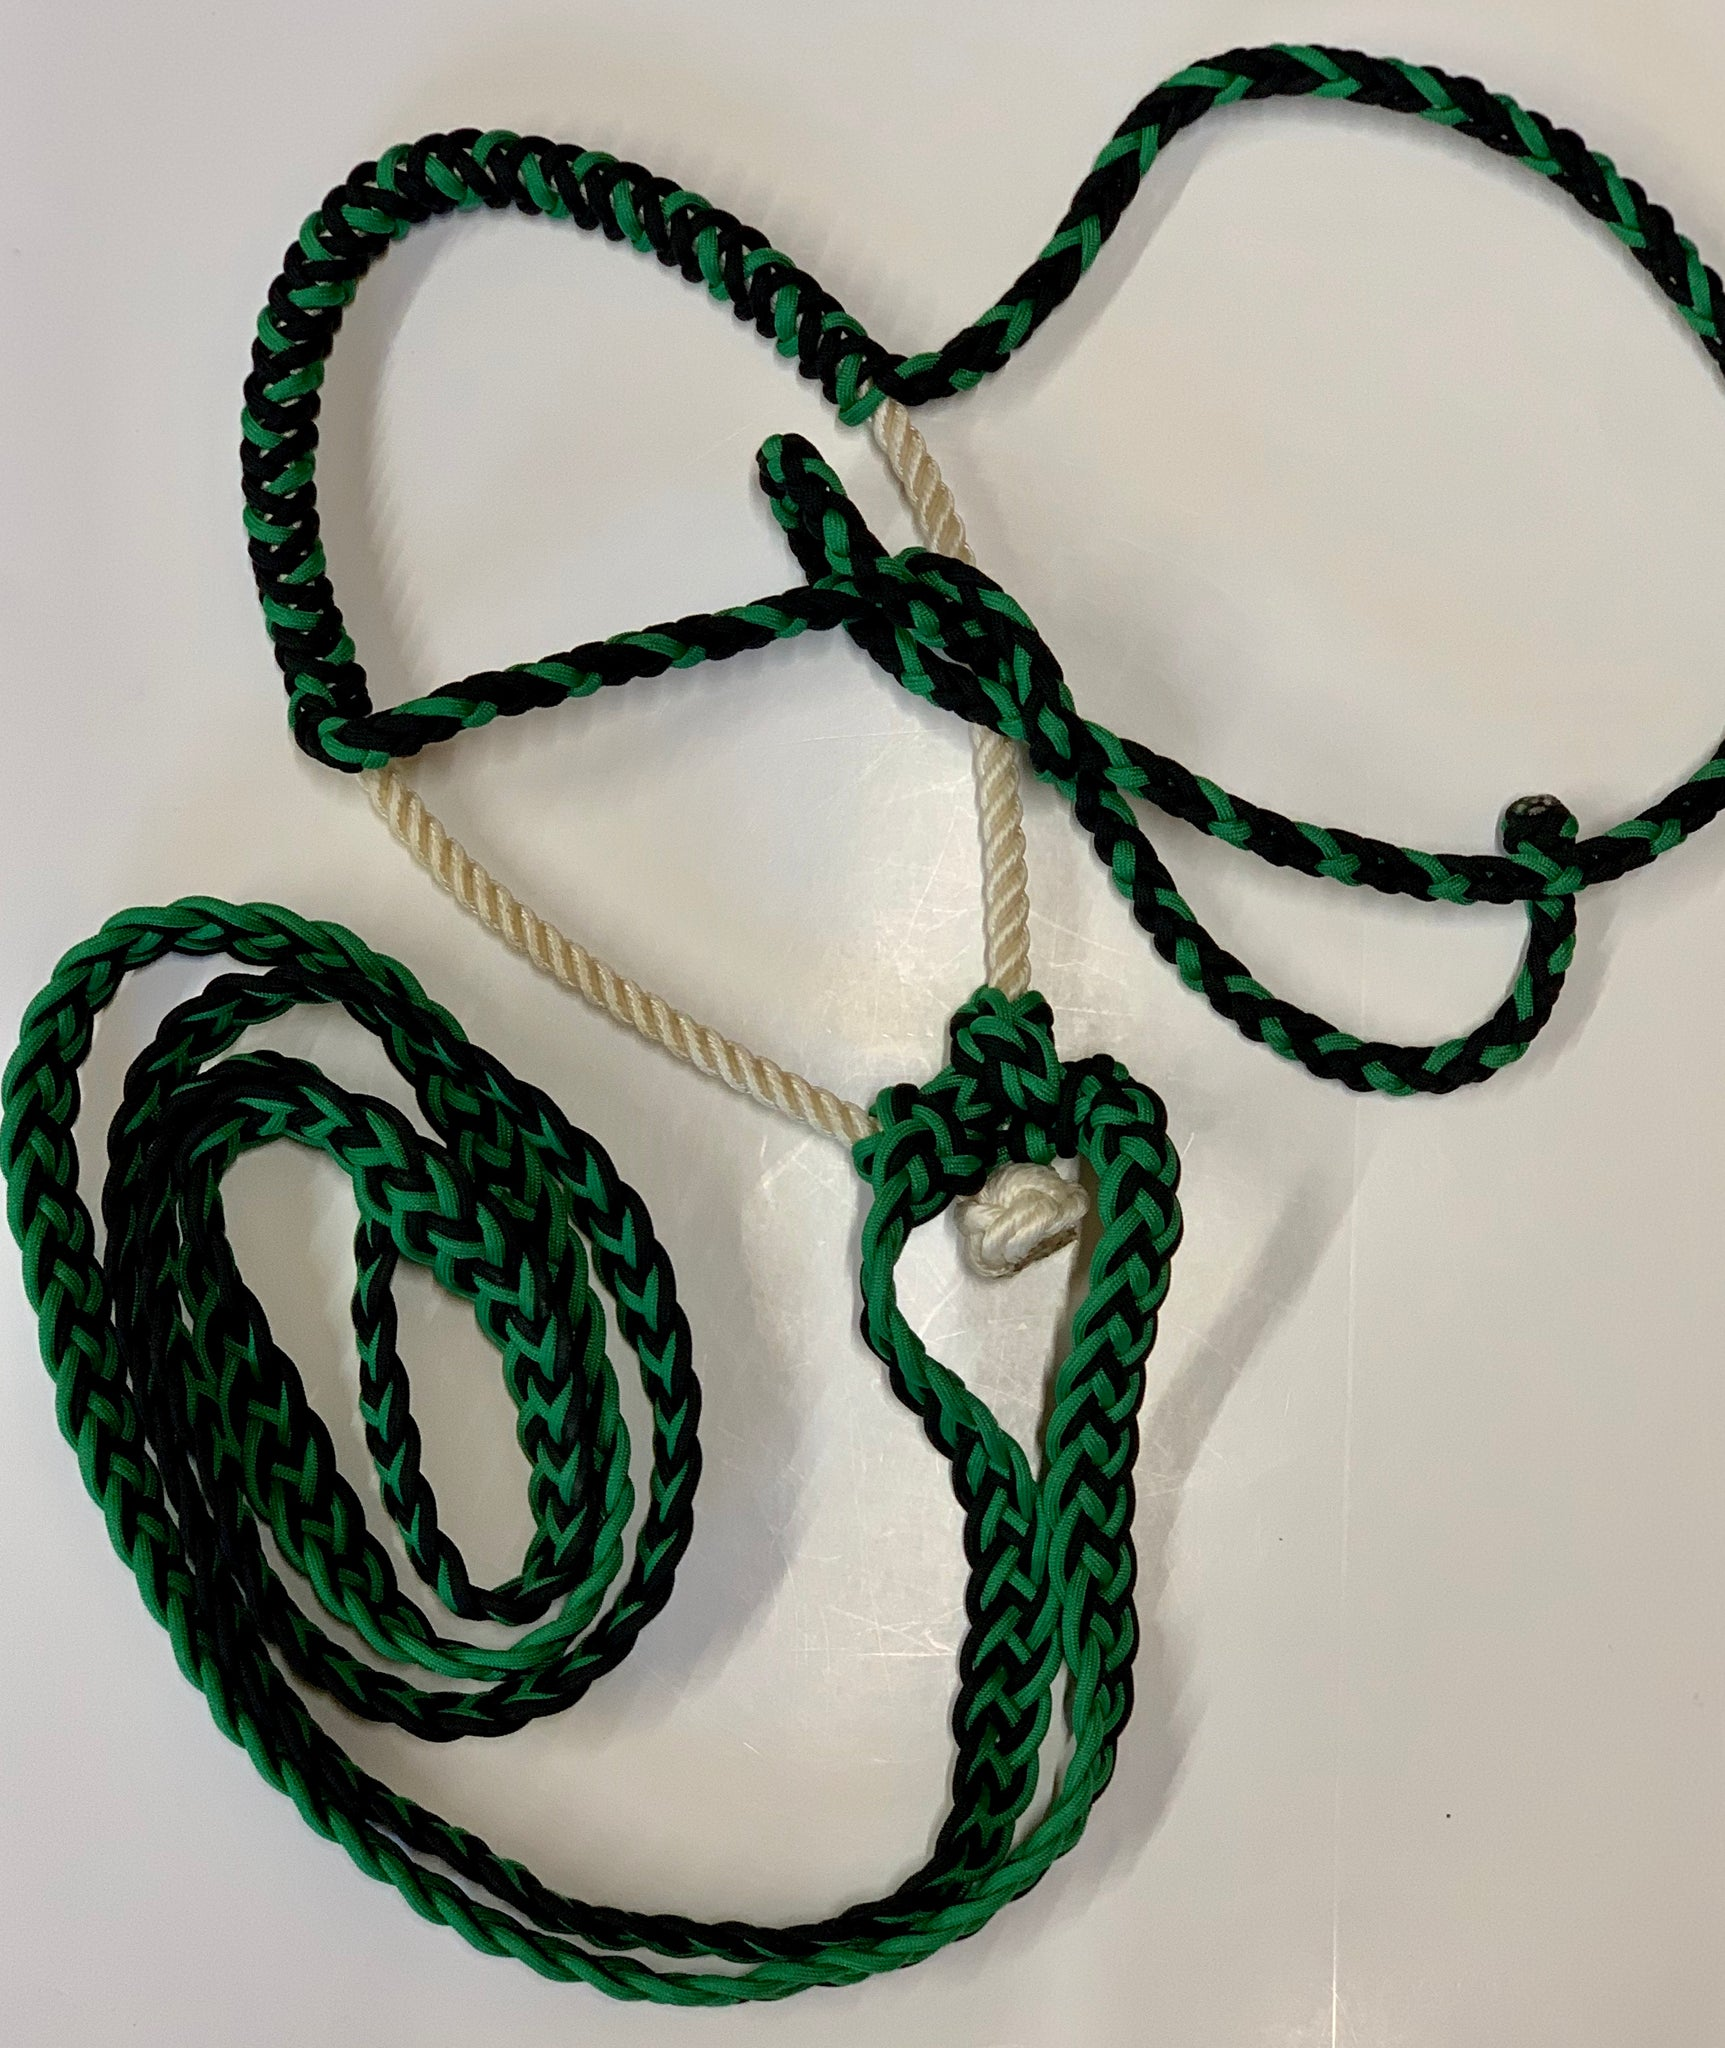 New Handmade Lariat Rope LopingTraining Hackamore Bridle w Knots Fully rigged /& ready to ride!